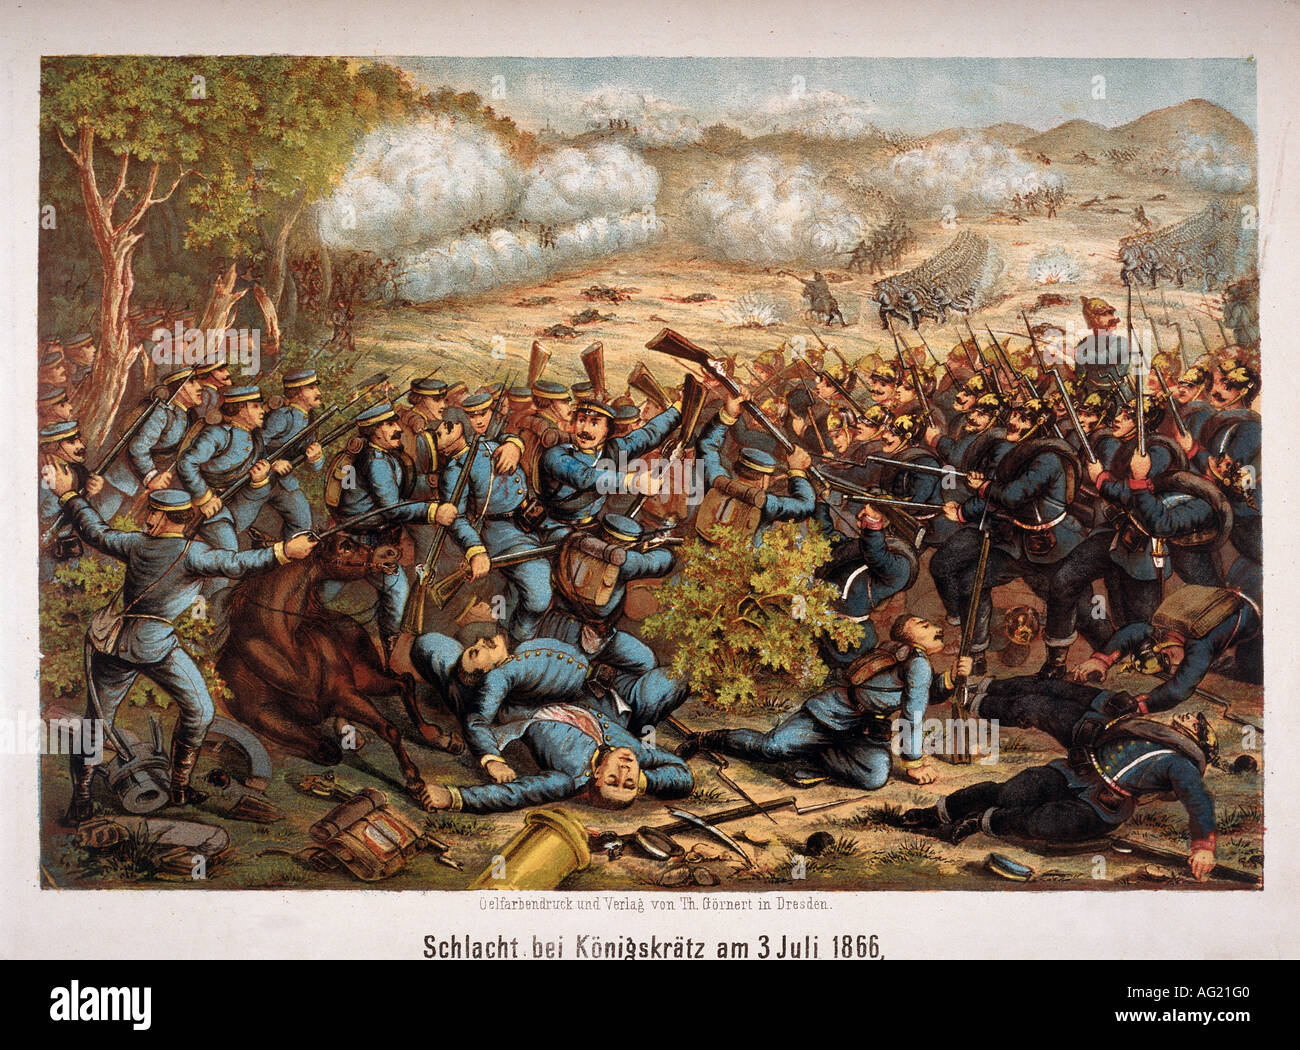 Austro-Prussian War 1866, Battle of Koeniggraetz, 3.7.1866, encounter between Prussian and Saxon infantry, oil chromotypography, Th. Goernert, Dresden, 19th century, Prussia, Saxony, Czechia, Czech Republic, Austria, Moravia, Sadova, Hradec Kralove, Prussian soldiers, Saxon infantry, Prussian - Austrian war, crowd, crowds, crowds of people, battle, battles, encounter, encounters, historic, historical, Koeniggraetz, Königgrätz, Koniggratz, Goernert, Görnert, Gornert, Additional-Rights-Clearances-NA - Stock Image